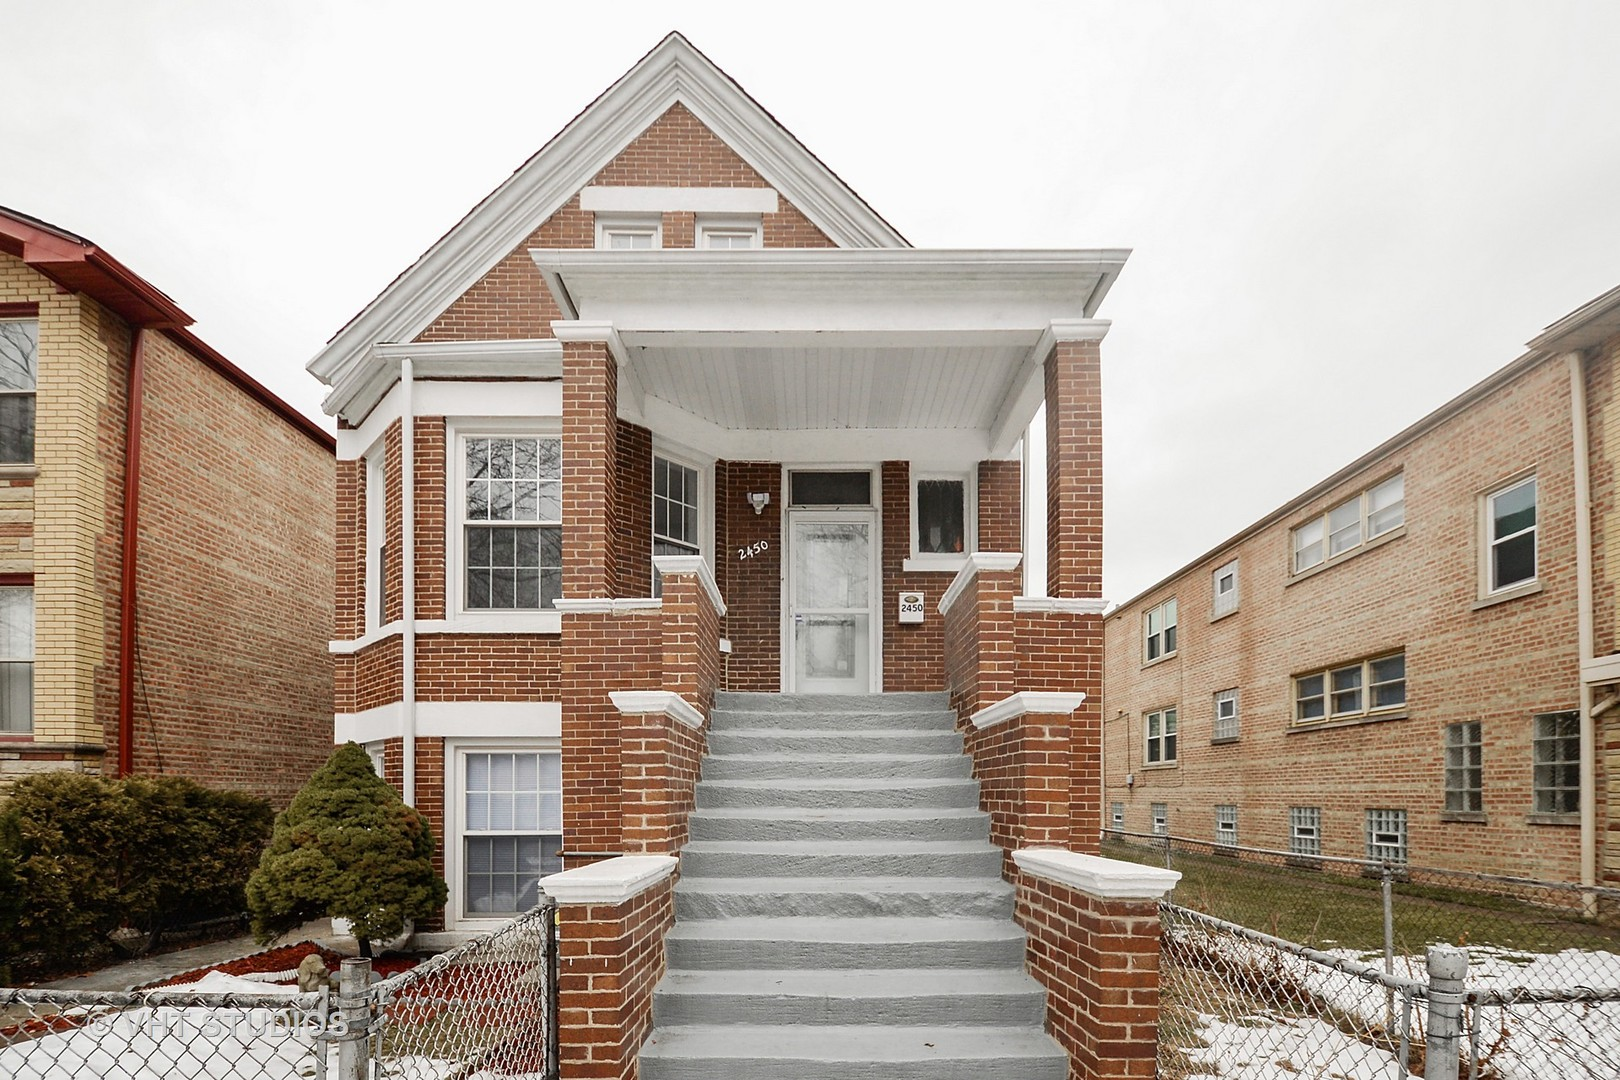 2450 WEST 54TH STREET, CHICAGO, IL 60632